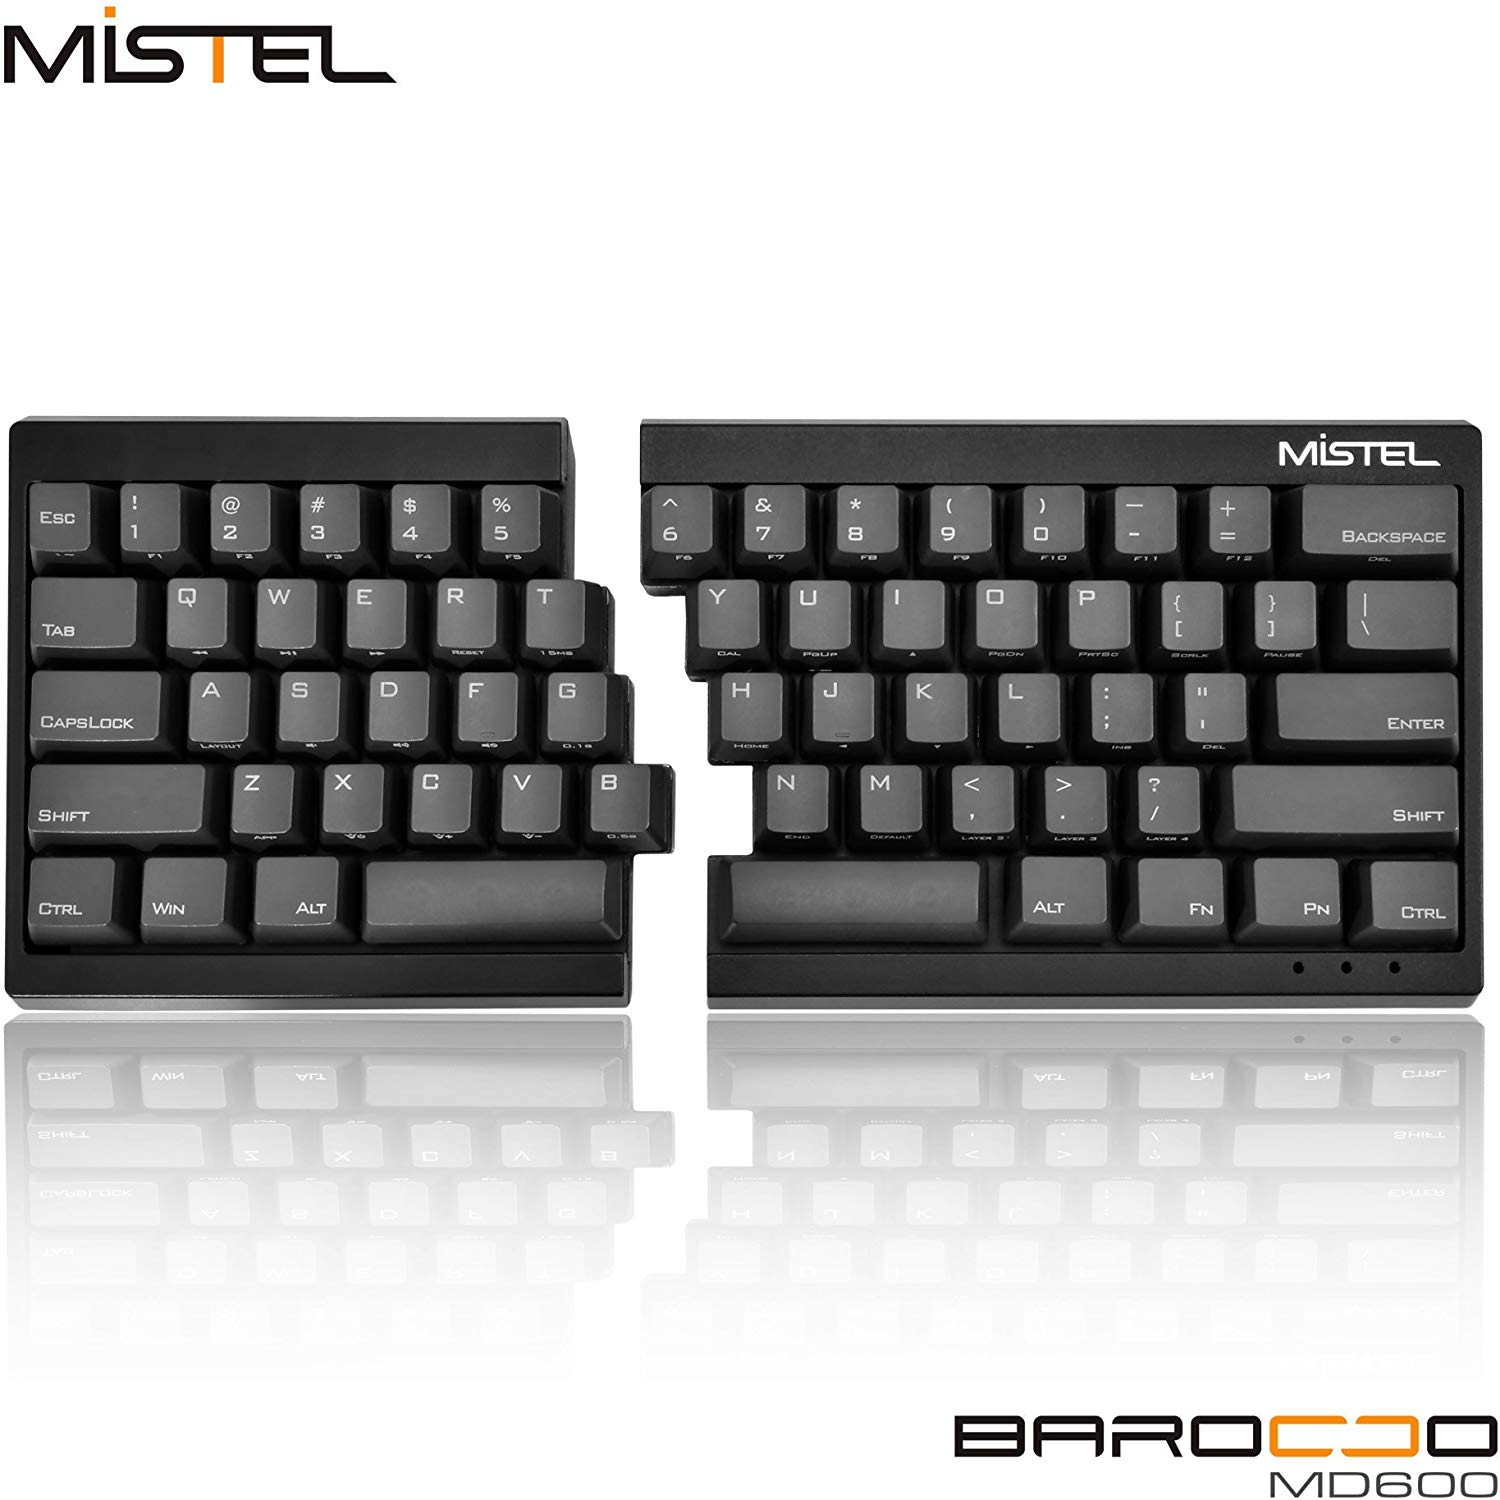 Mistel Barocco Ergonomic Split PBT Mechanical Keyboard